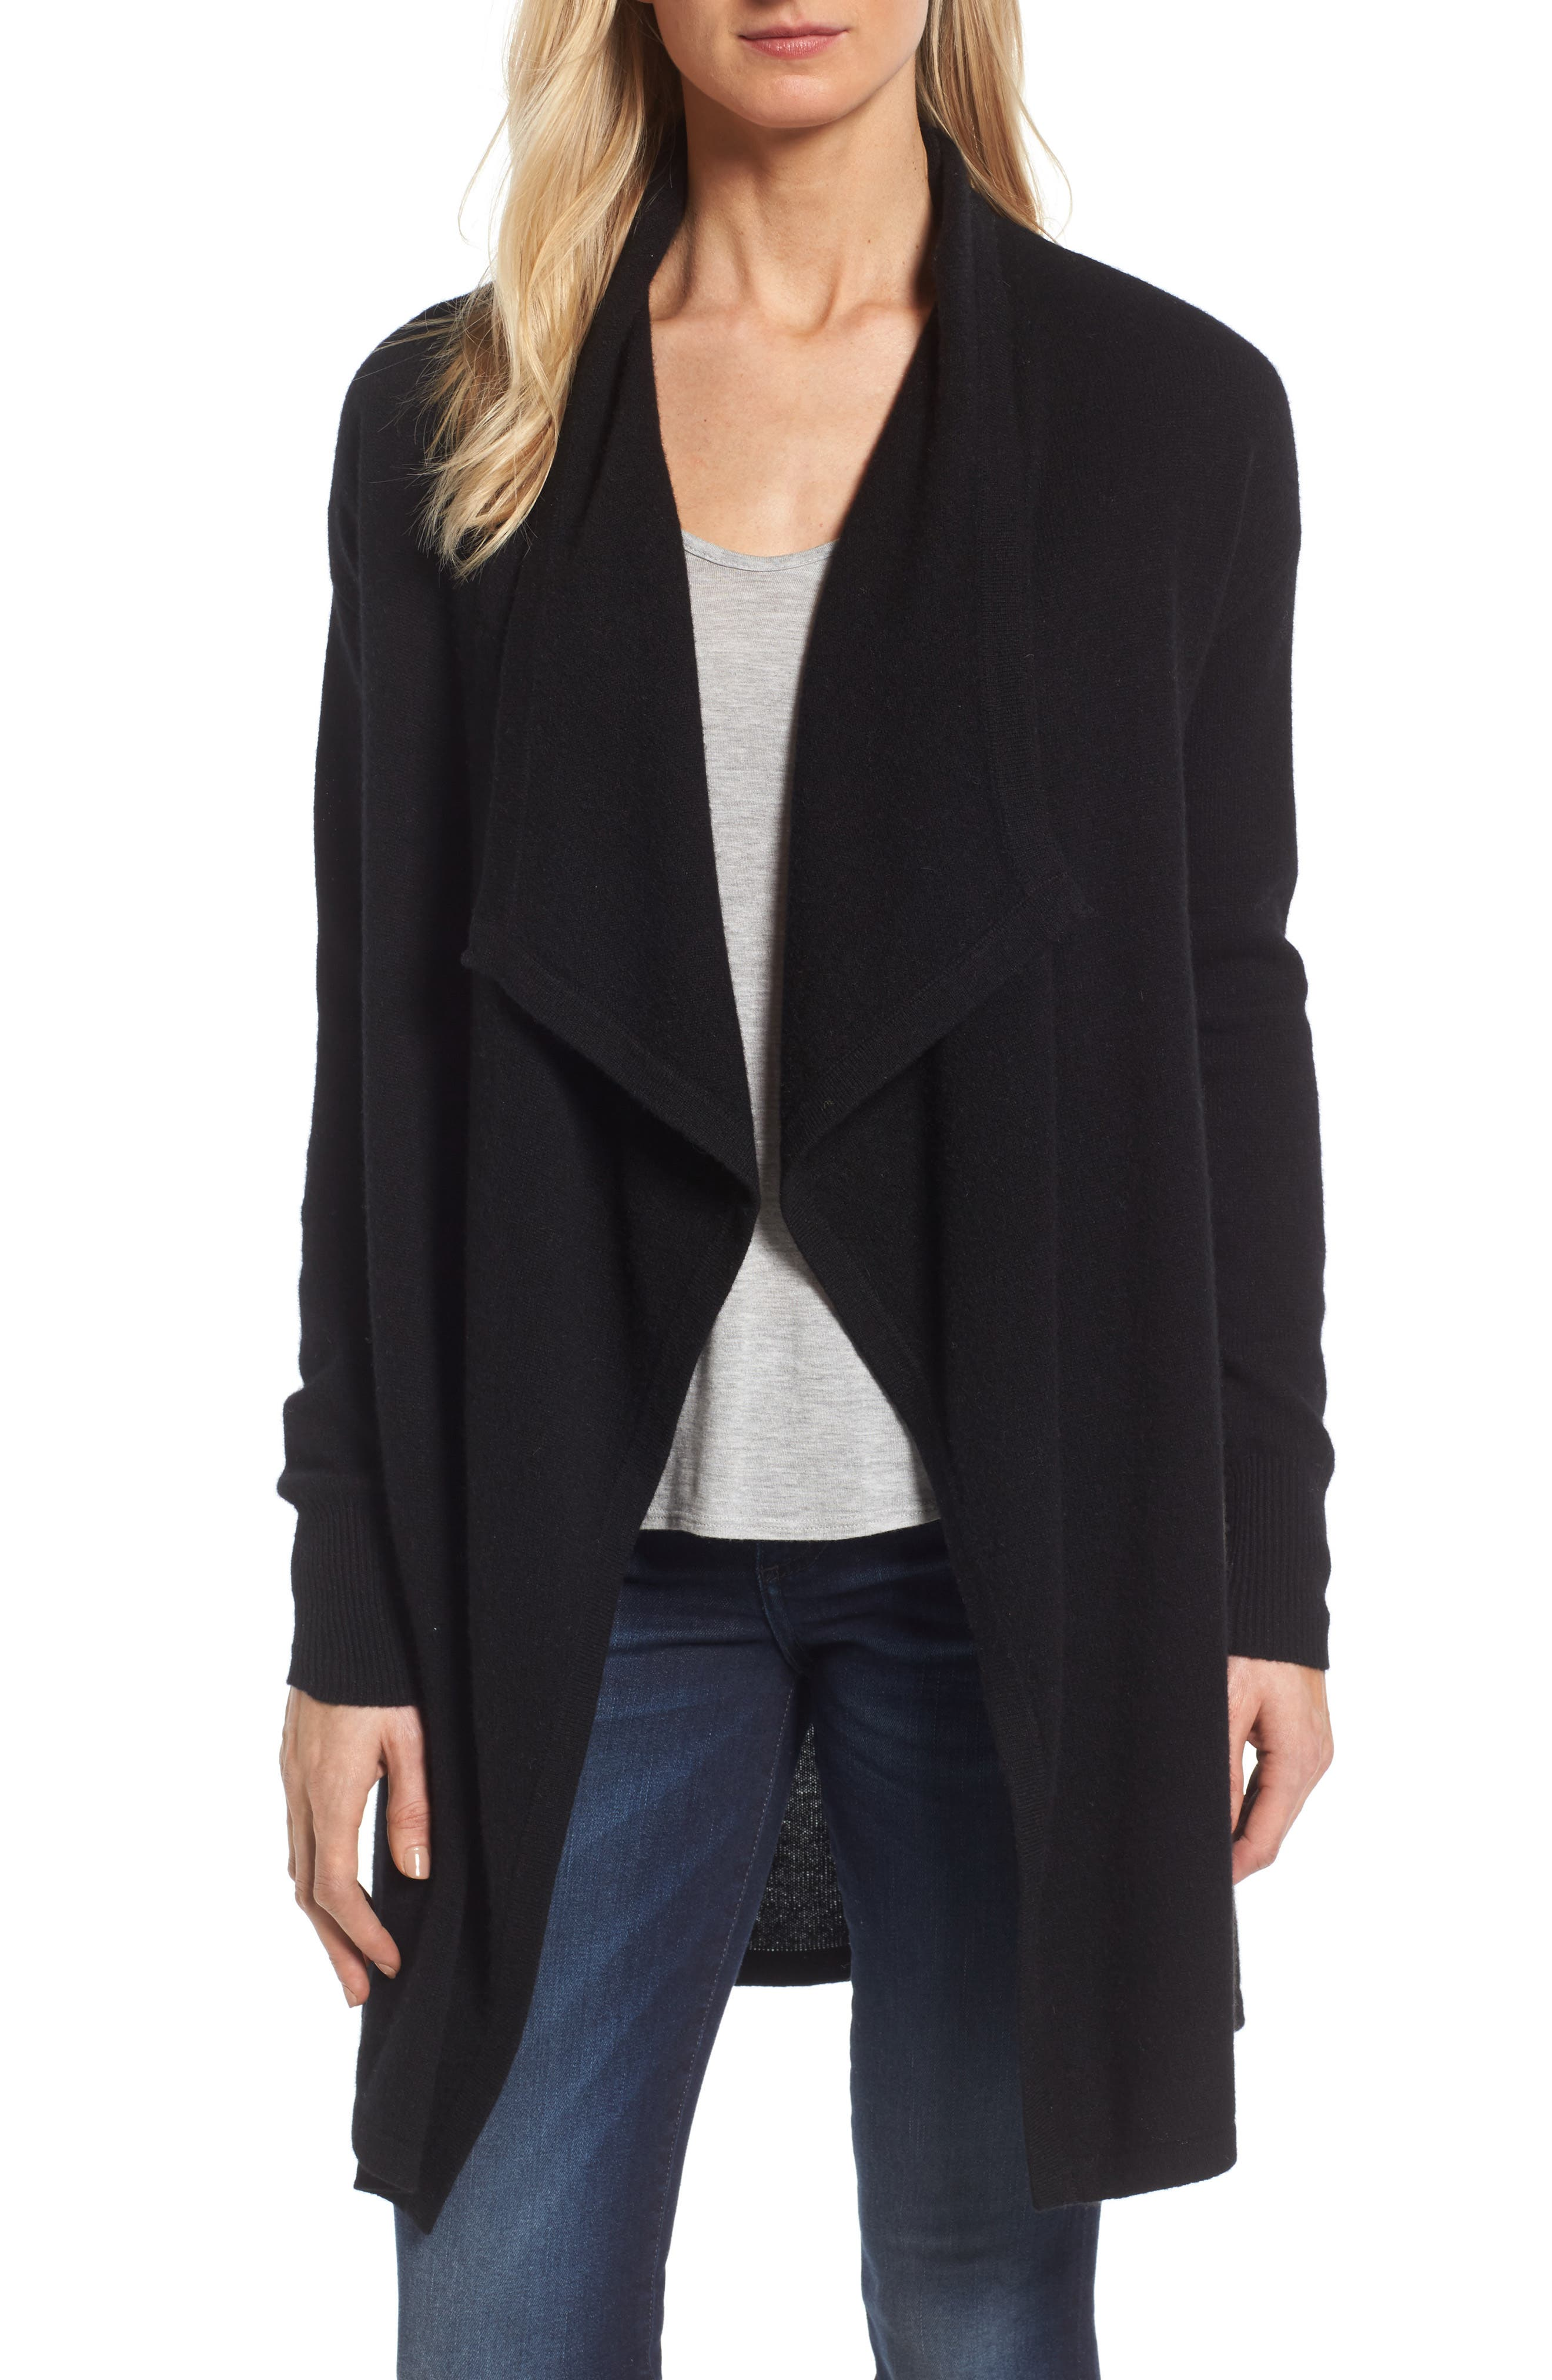 Alternate Image 1 Selected - Halogen® Cashmere Long Drape Front Cardigan (Regular & Petite)